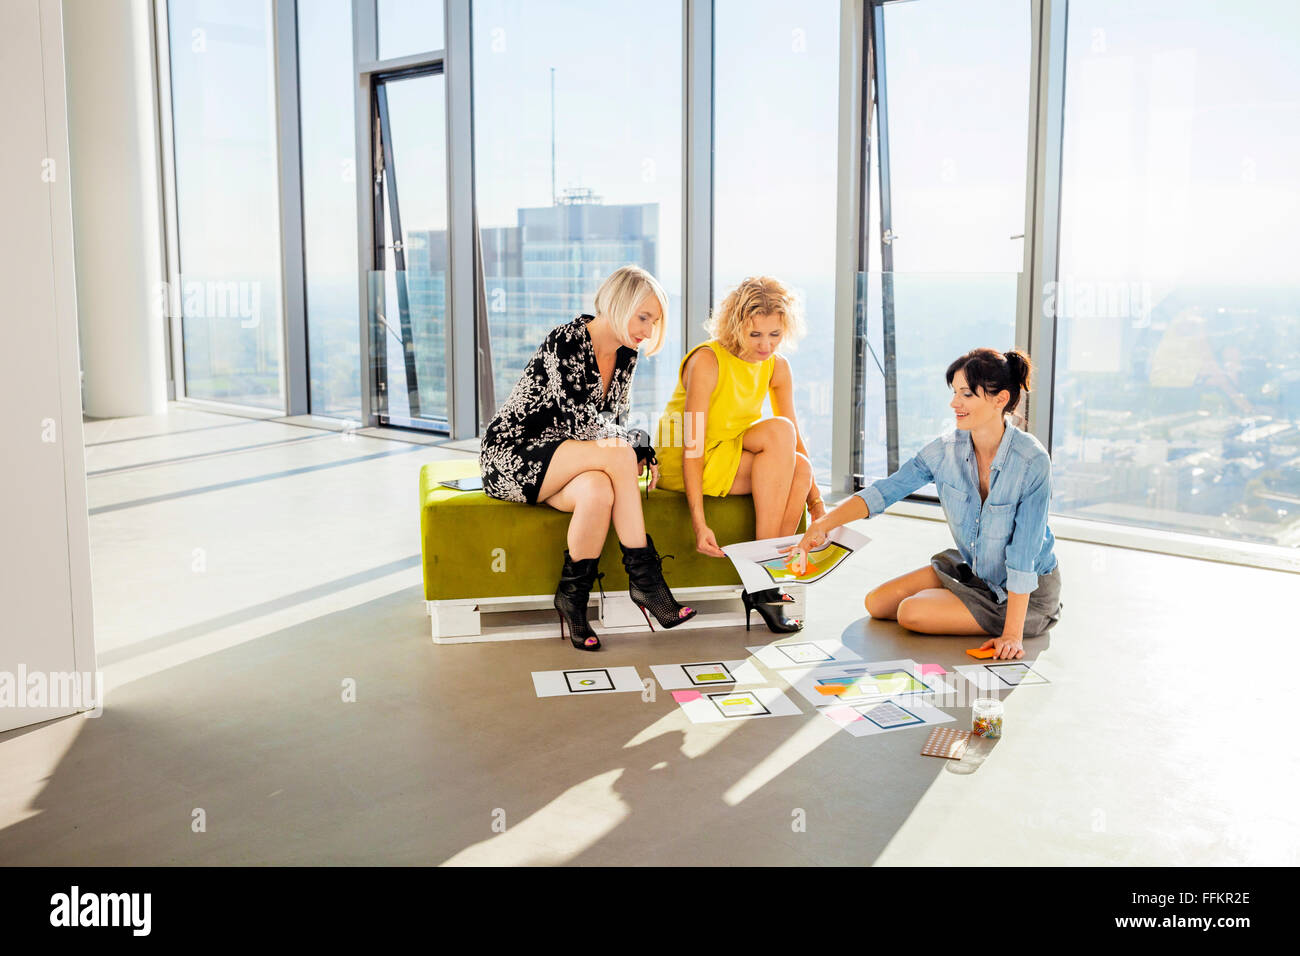 Three female architects in business meeting against urban skyline - Stock Image